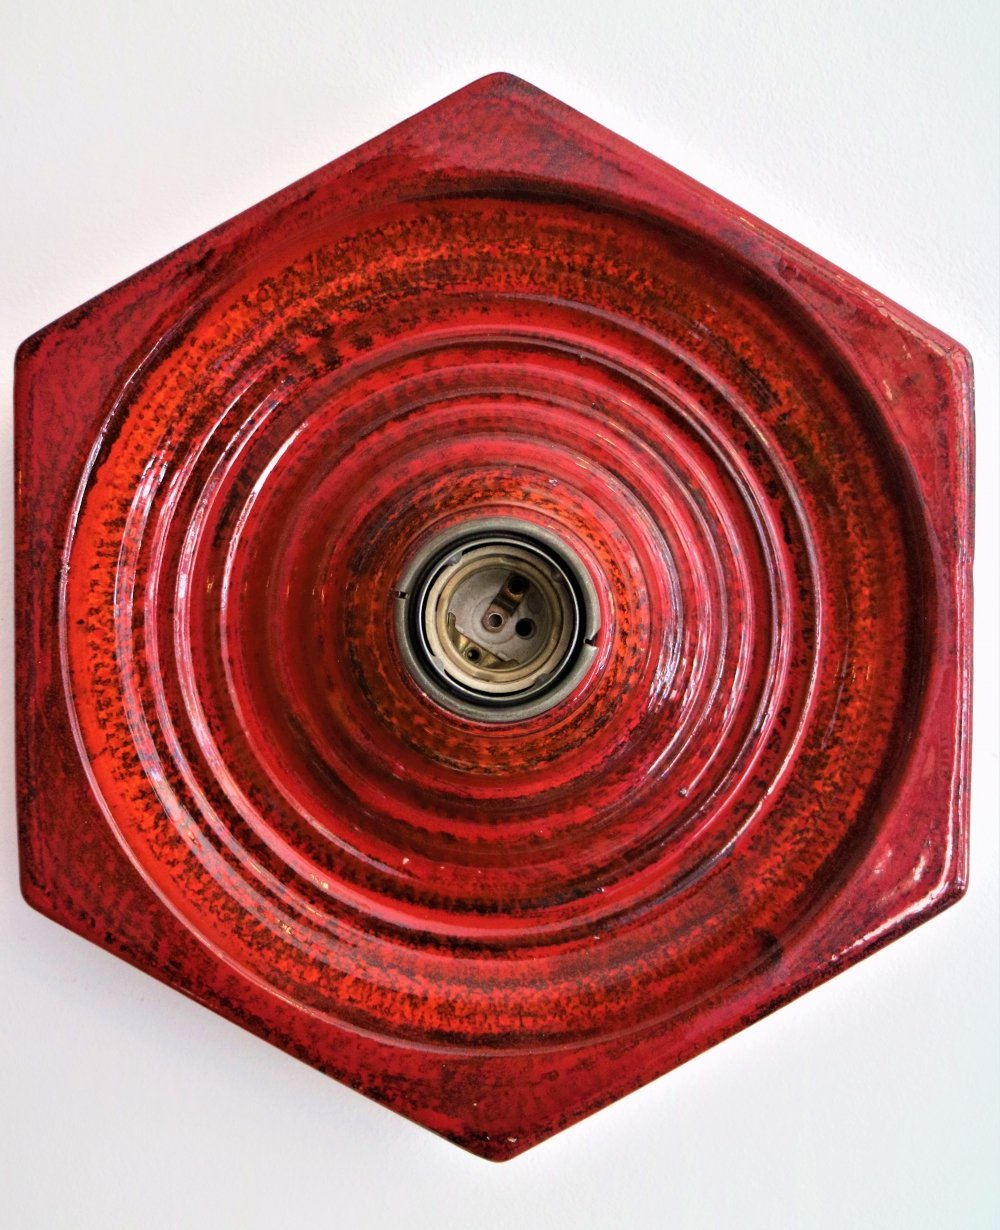 Pair of red ceramic wall lamps by Hustadt Leuchten, 1970s